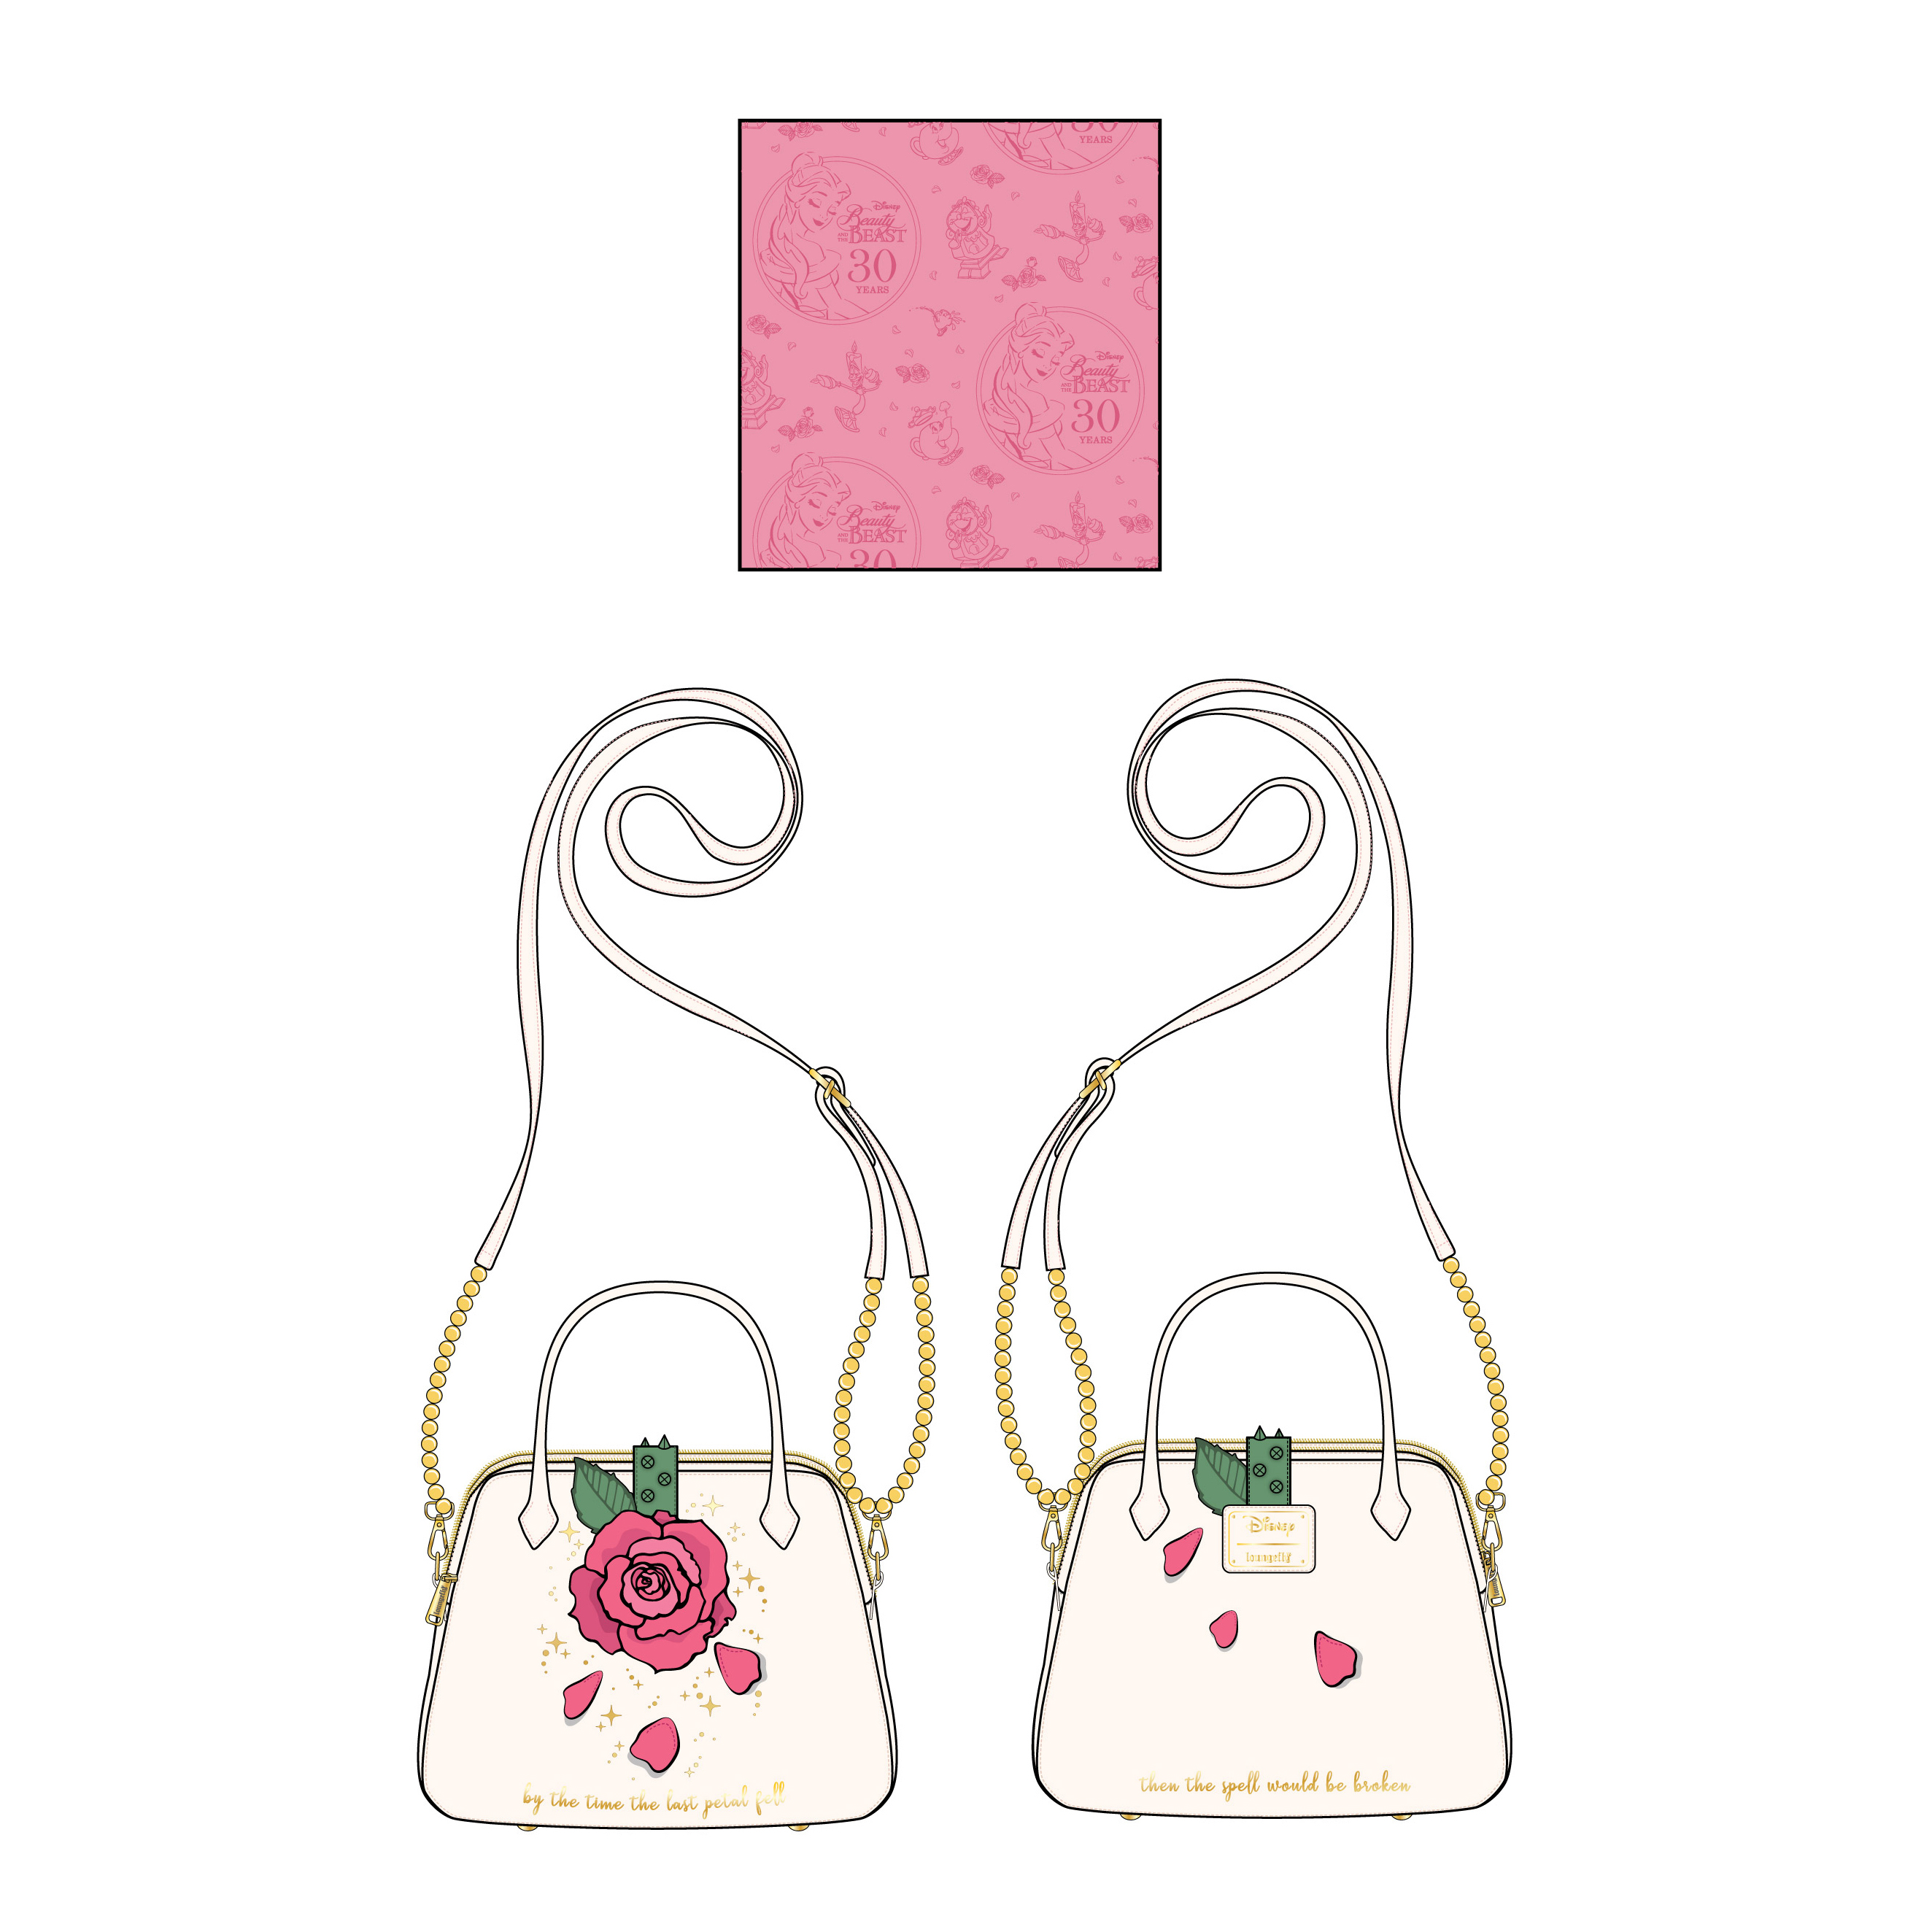 Disney Loungefly Bag - Beauty and the Beast Rose - Crossbody